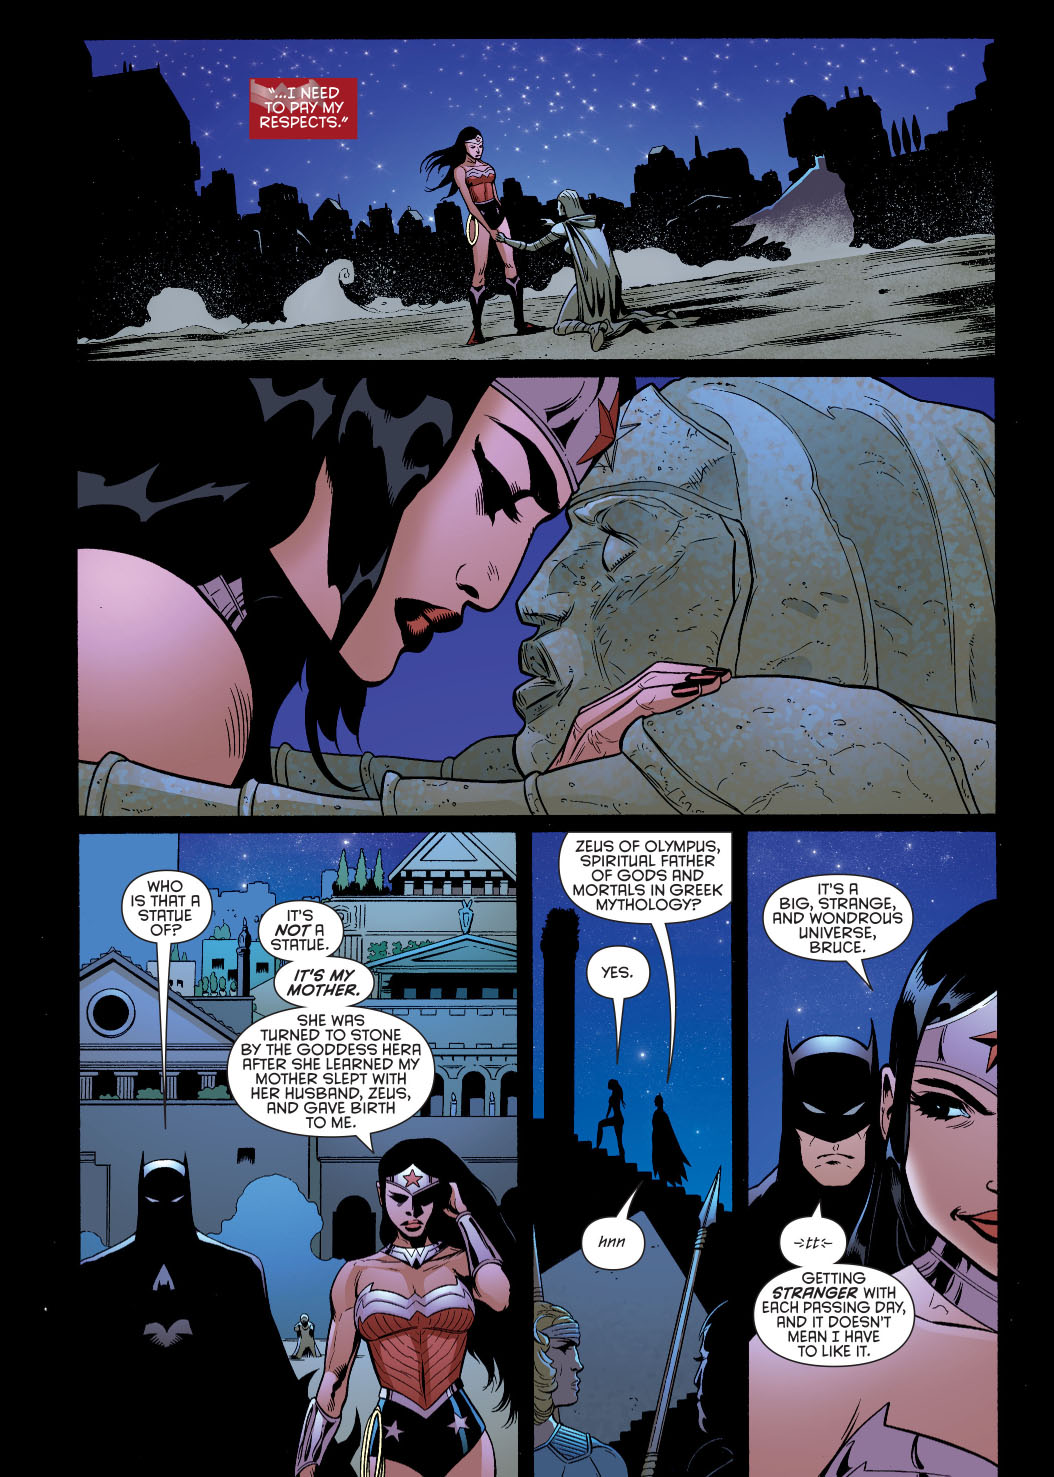 batman learns of wonder woman's origins